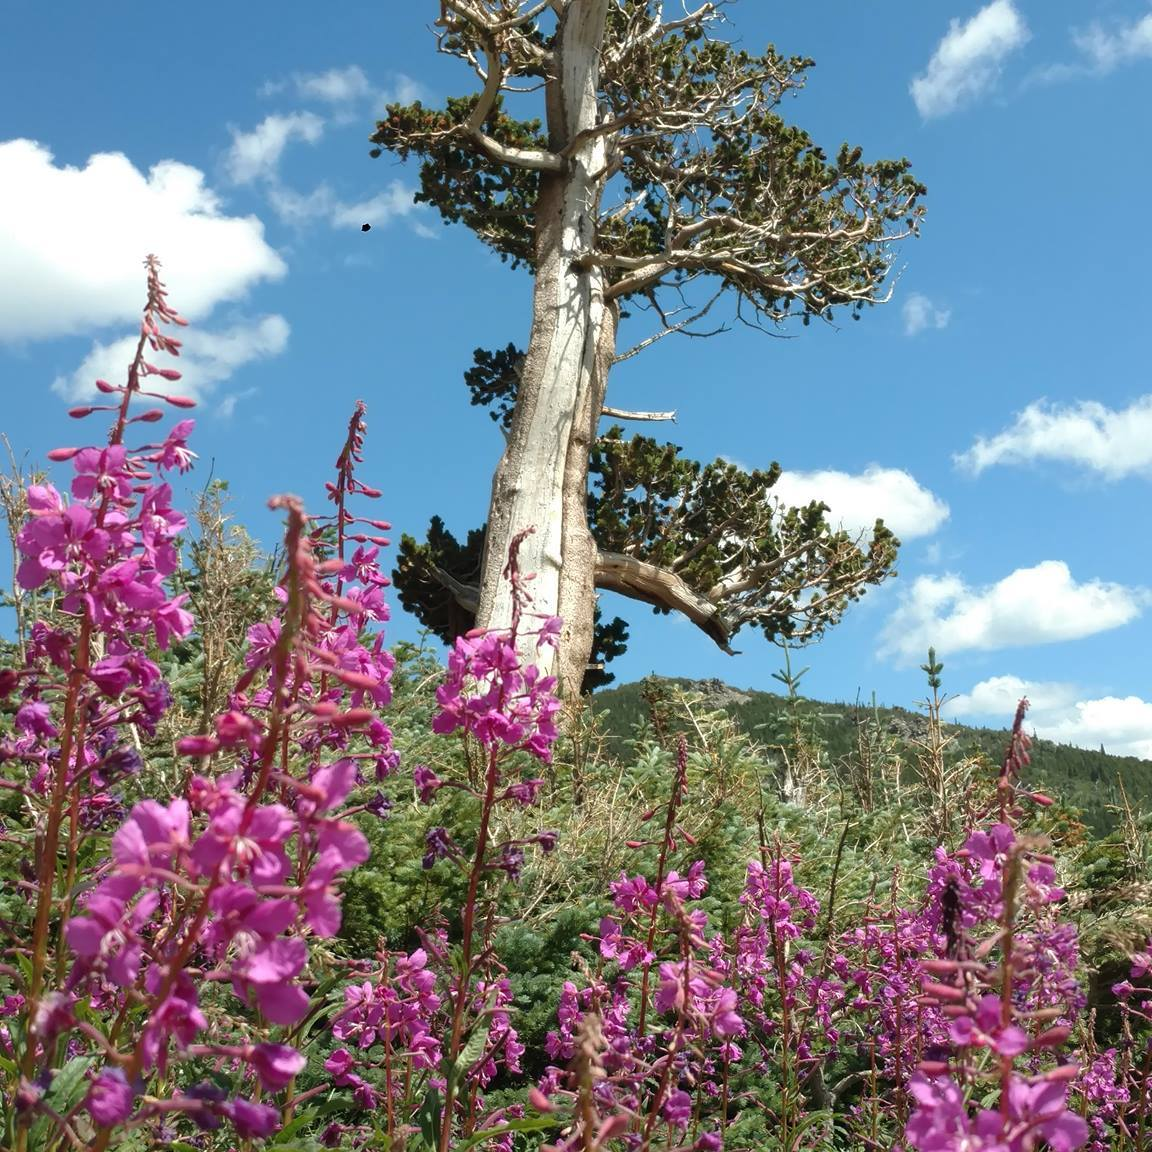 Tree and wildflowers near Saint Mary's Glacier